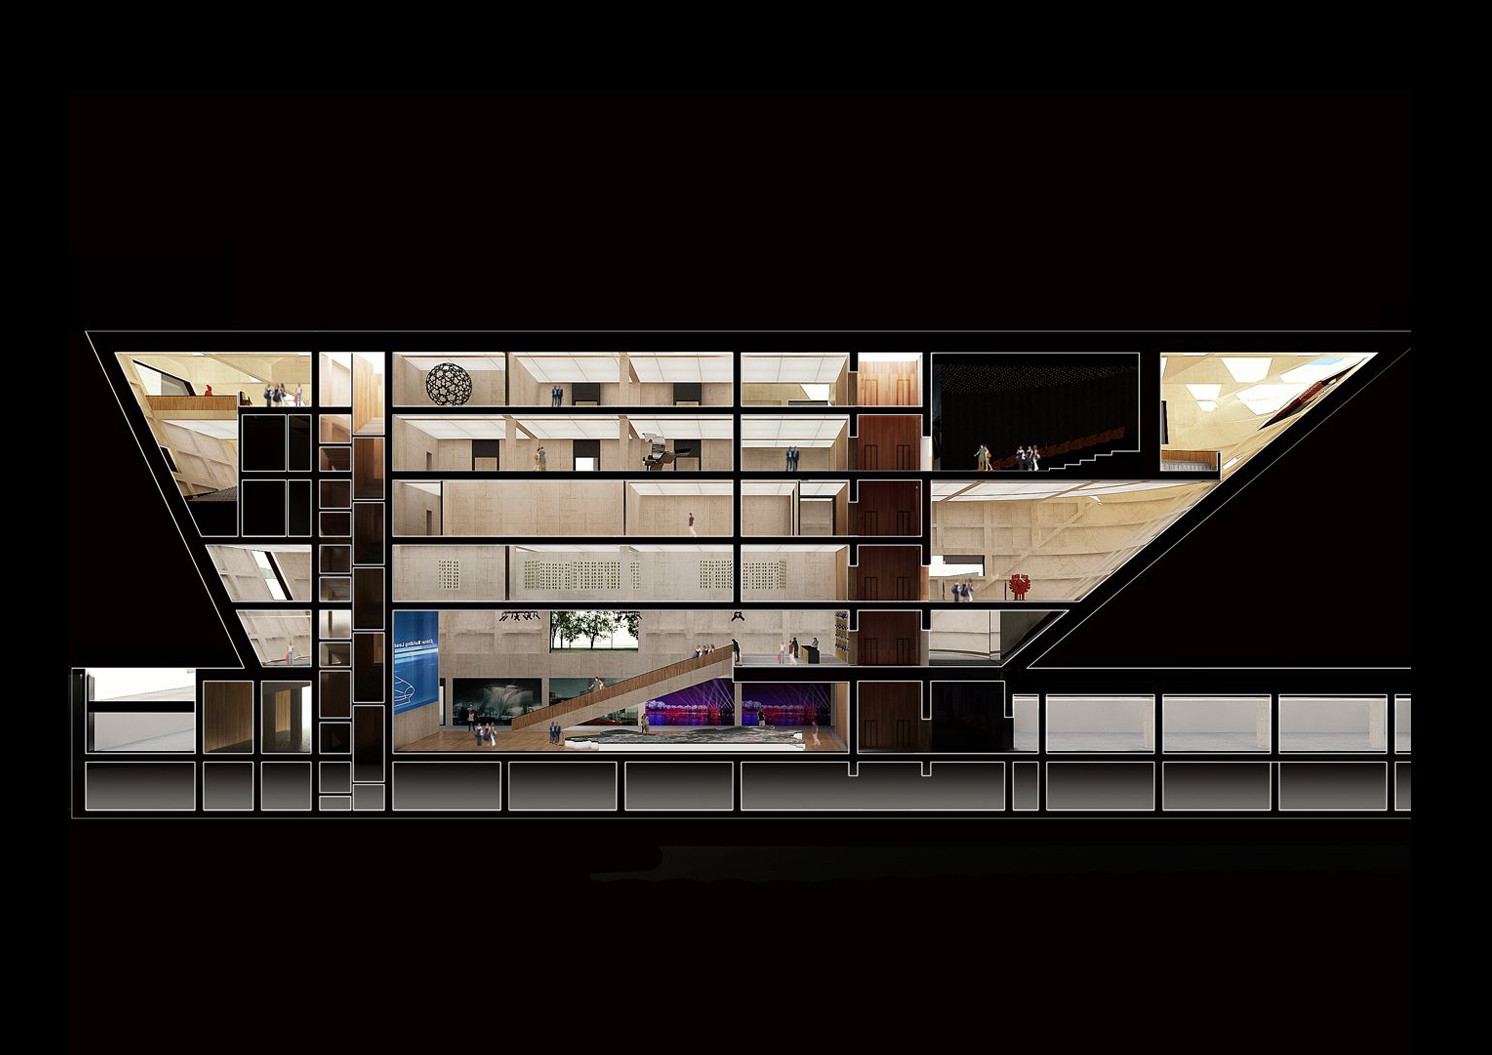 Section (Book Mall). Image Courtesy of Mecanoo / Doug and Wolf